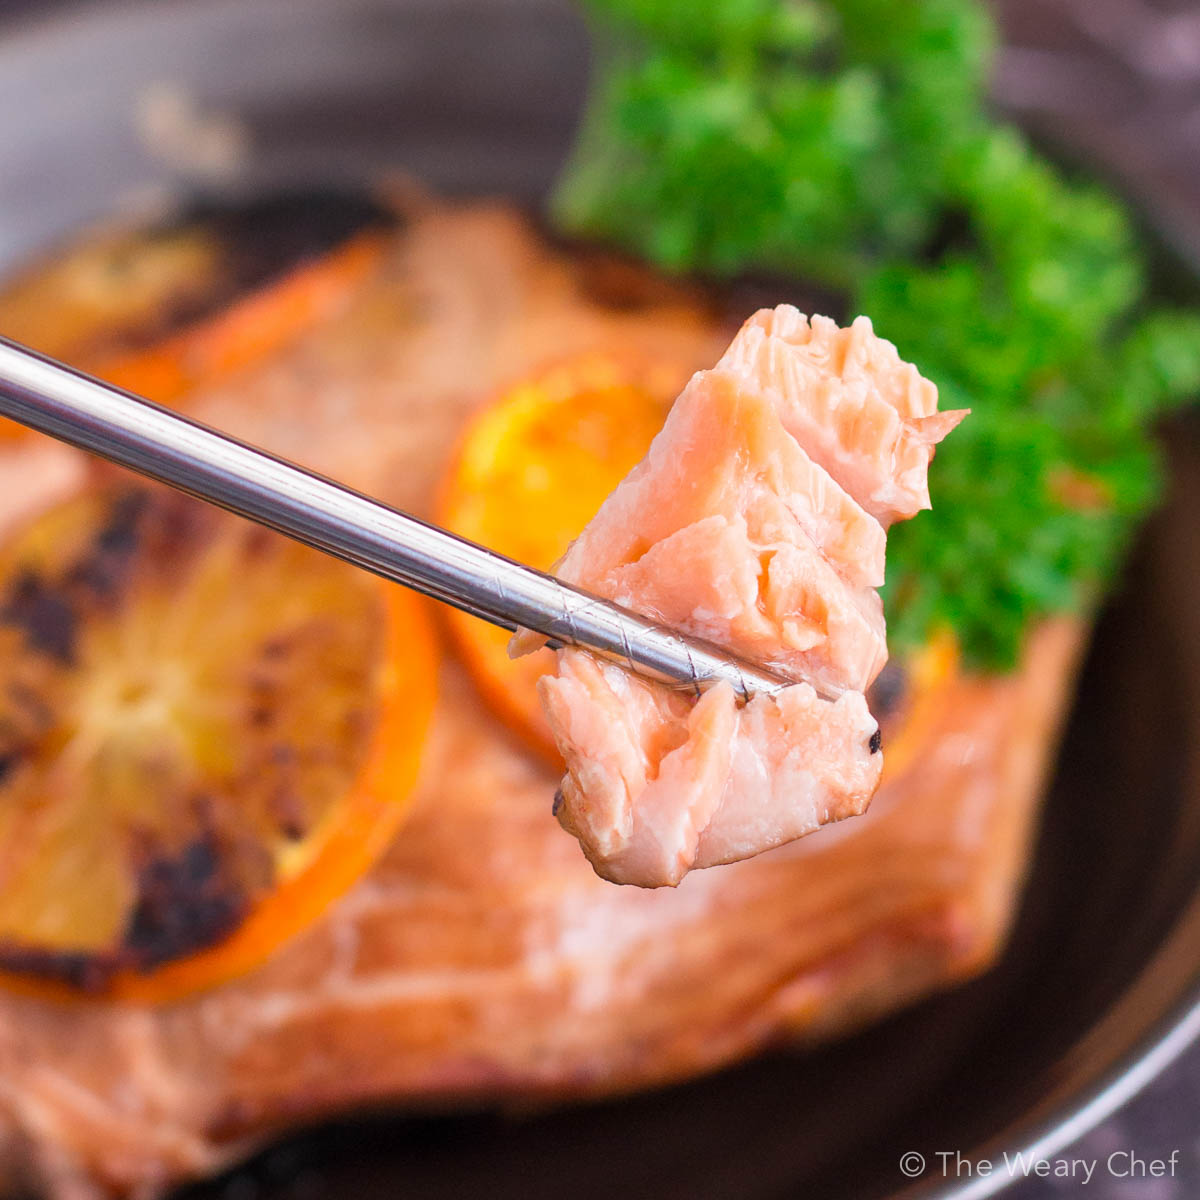 You'll love this seared orange salmon for dinner tonight!